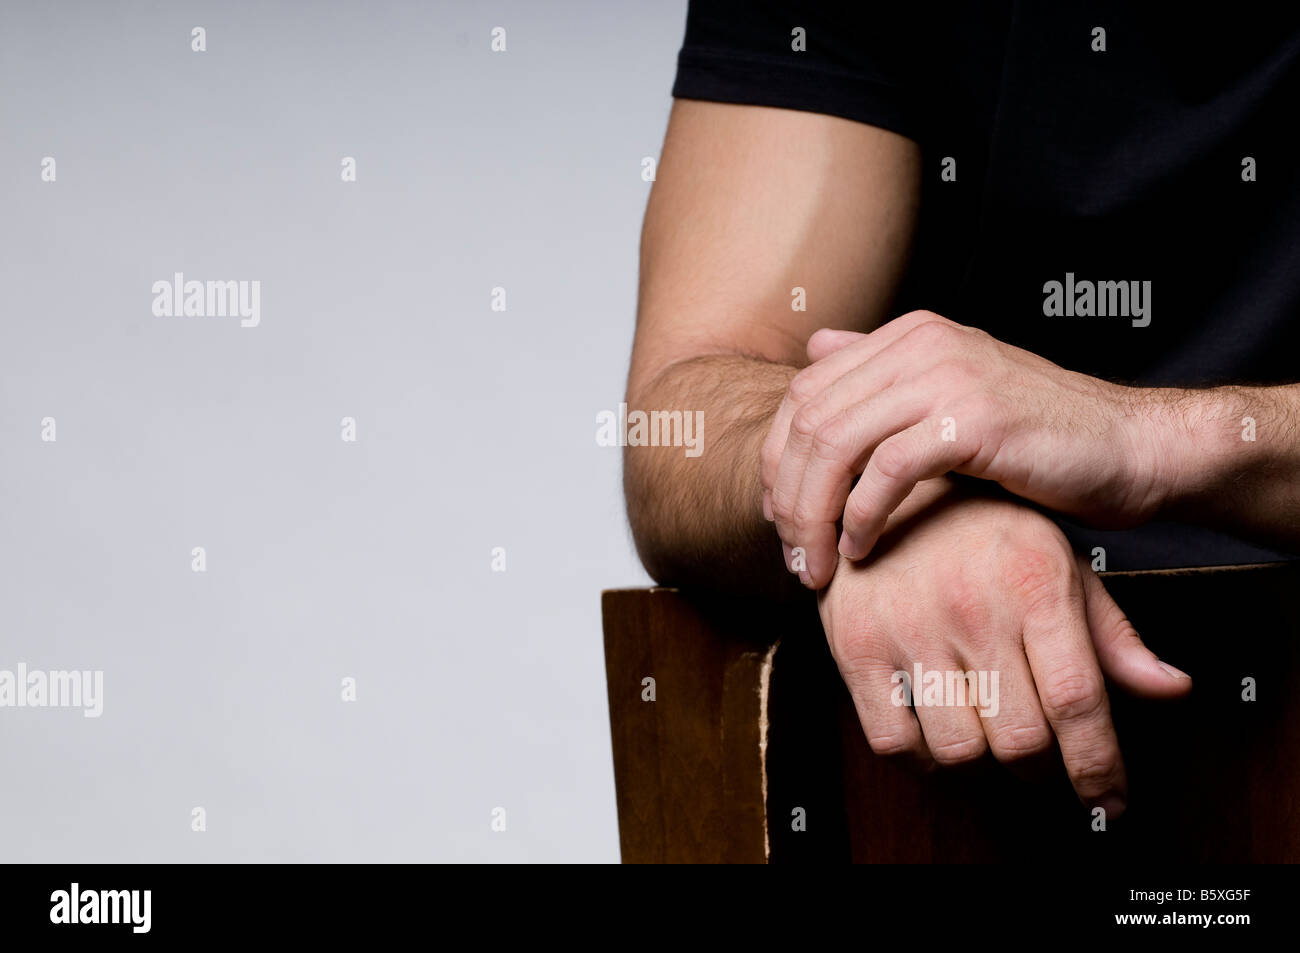 Strong man's hands. - Stock Image